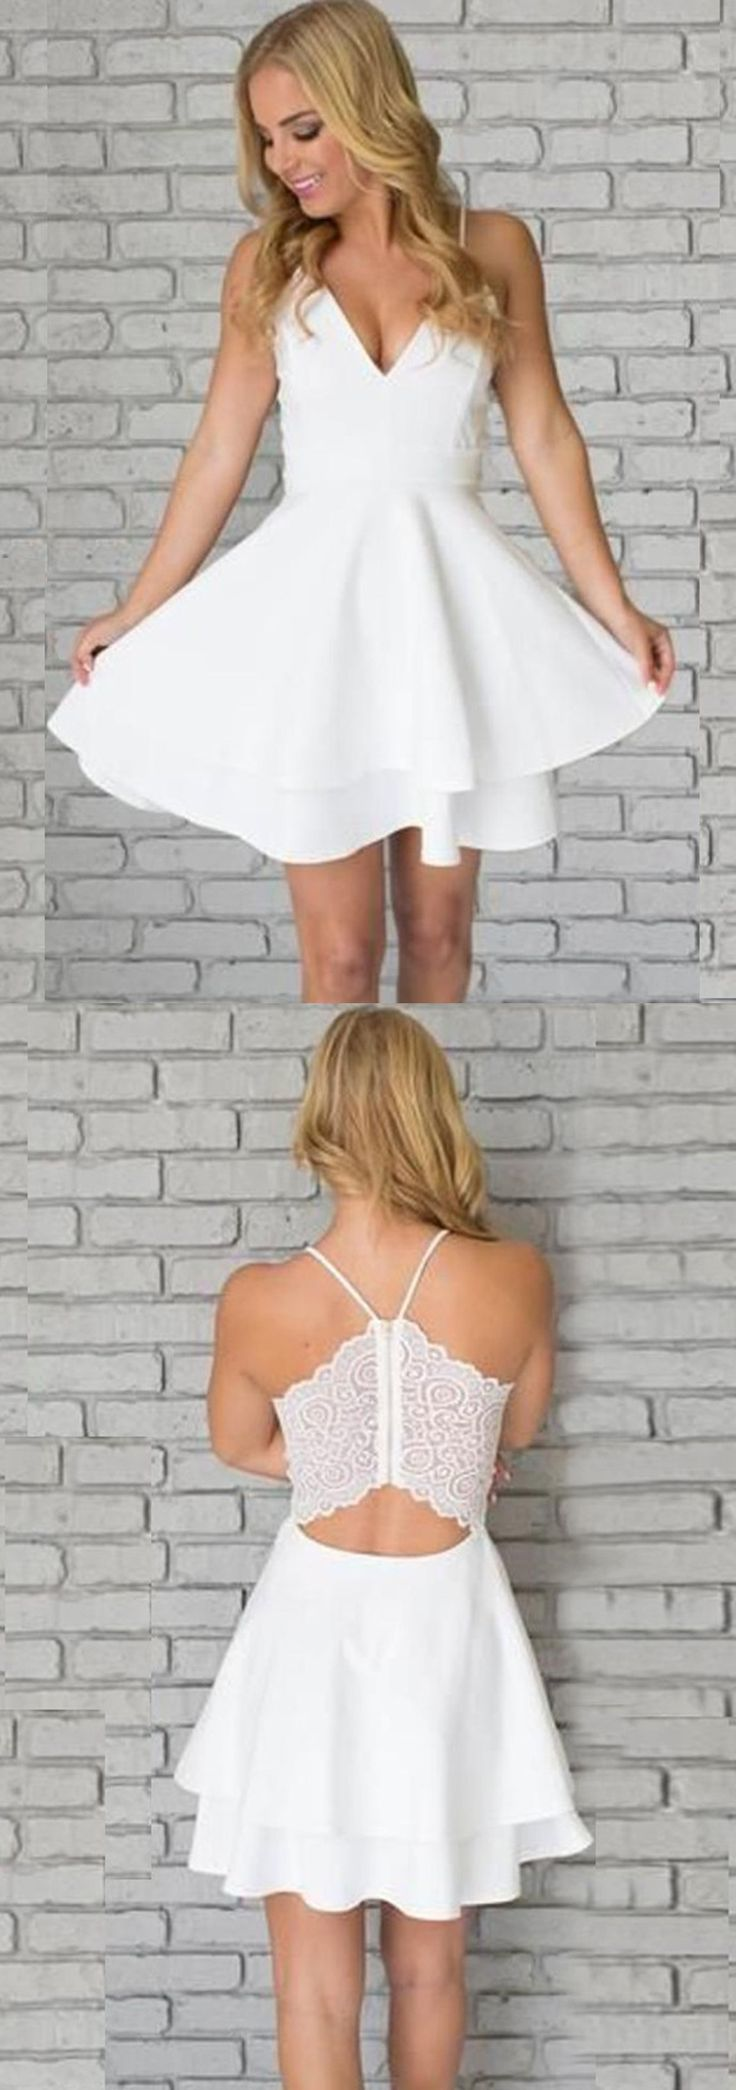 A-Line Party Dresses,Spaghetti Straps Dresses,Short Homecoming Dresses,White Lace Homecoming Dresses